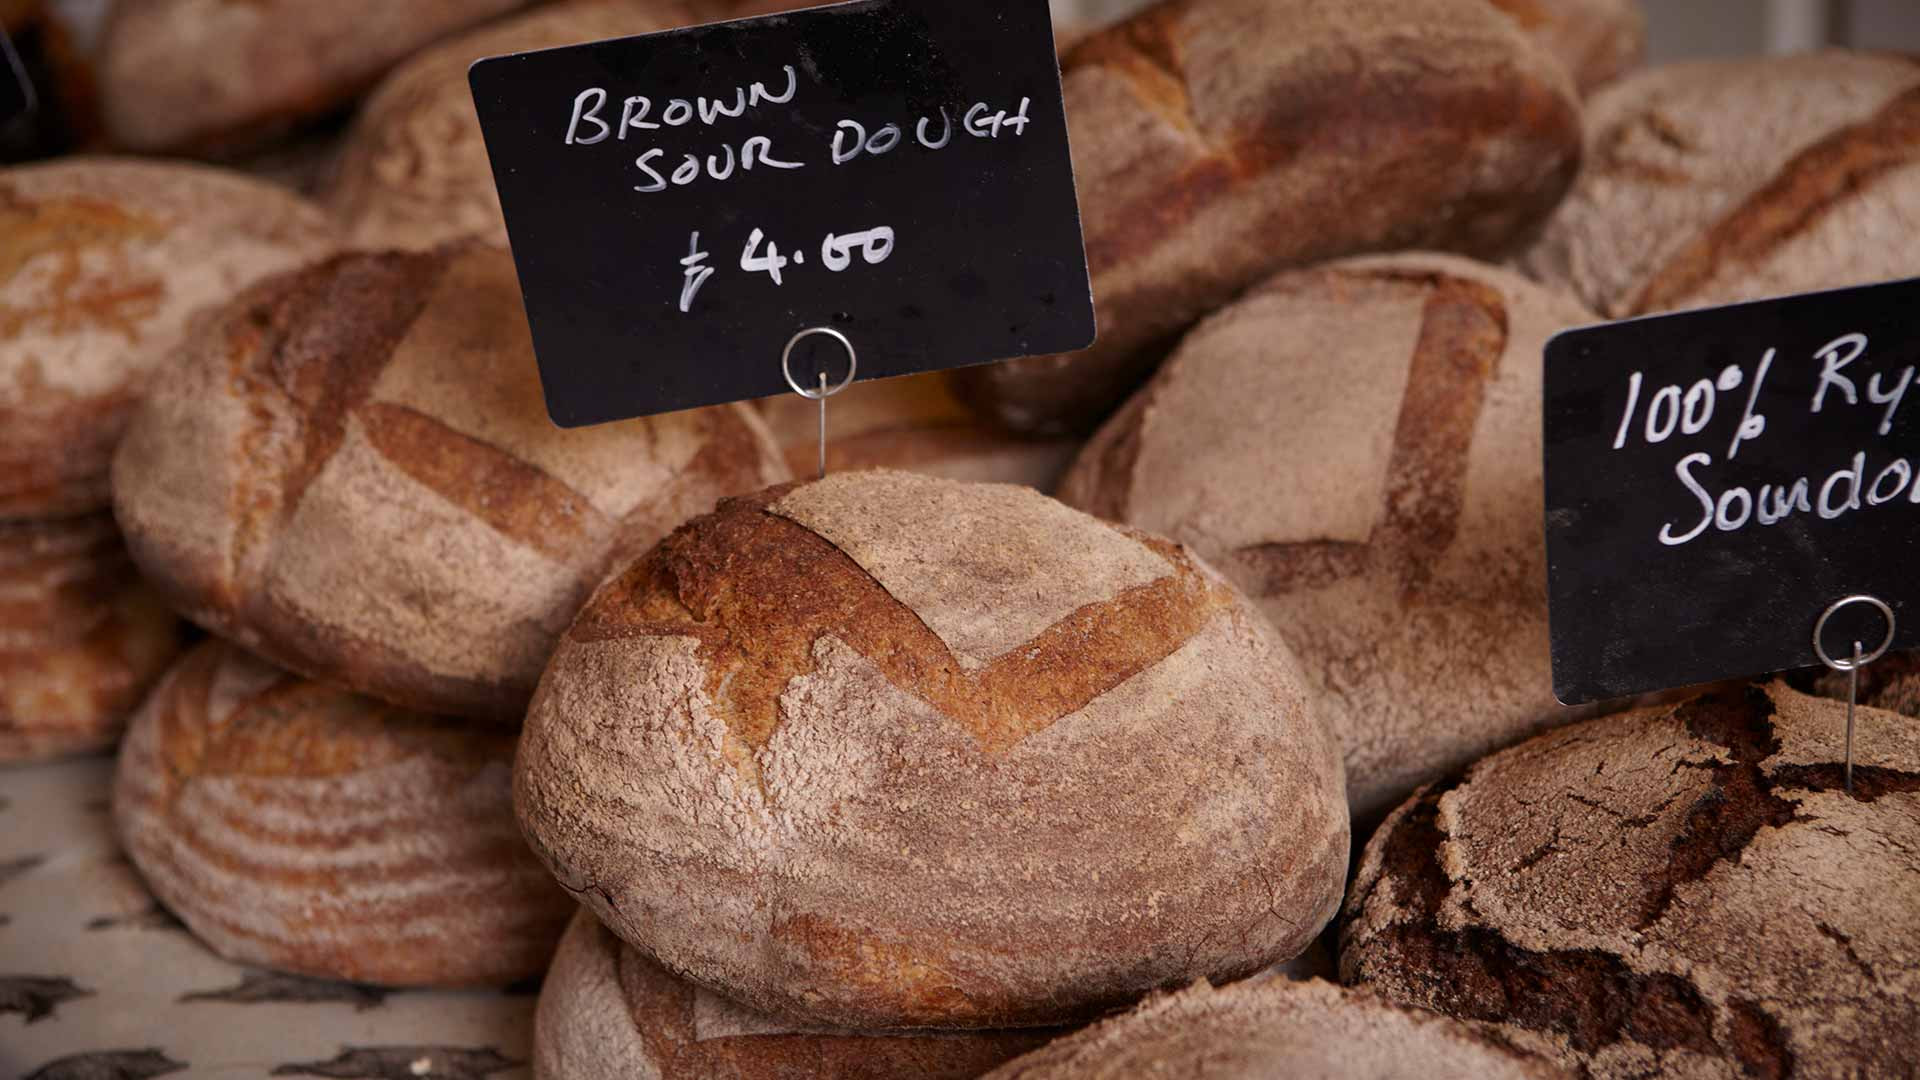 Brown sourdough from St. John's Bakery, Druids Street